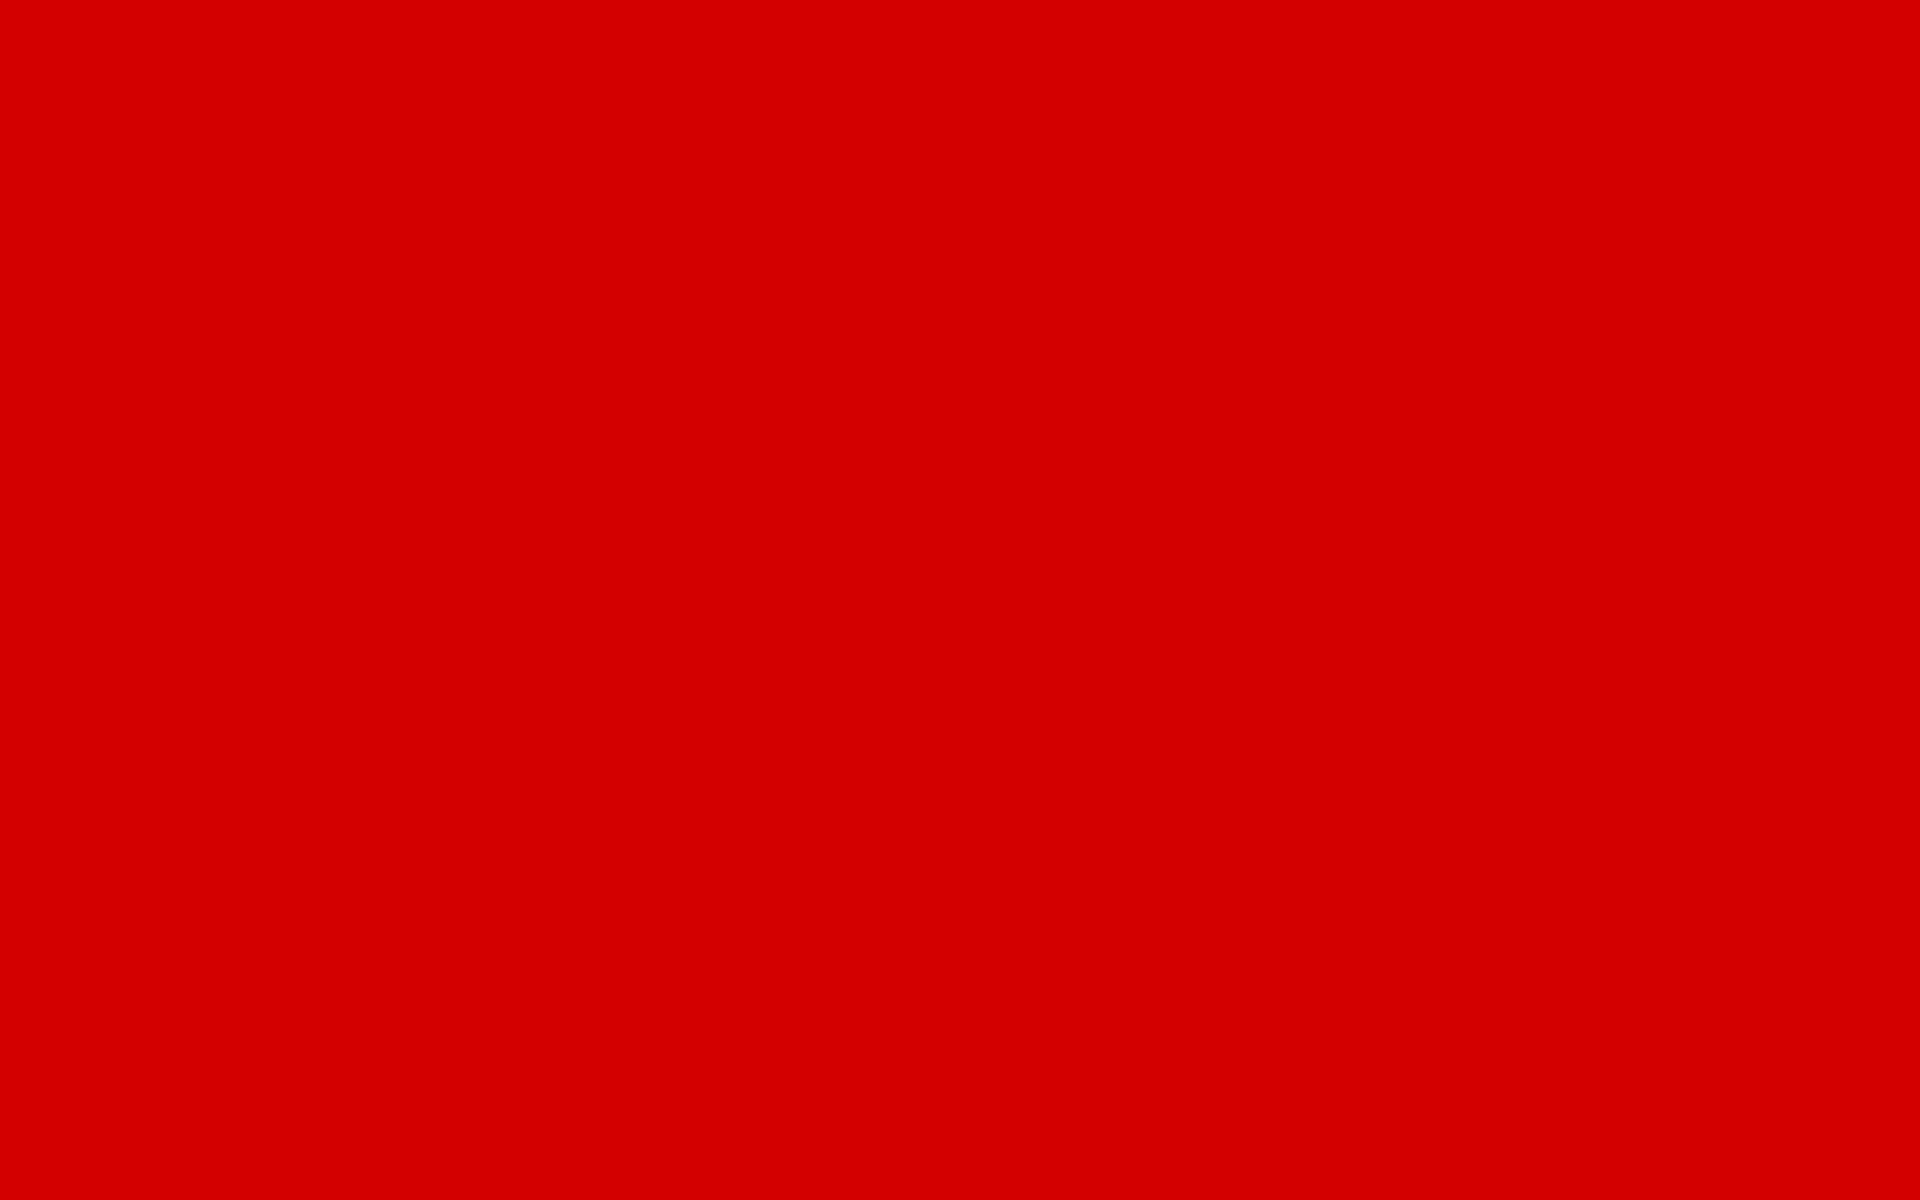 1920x1200 Rosso Corsa Solid Color Background